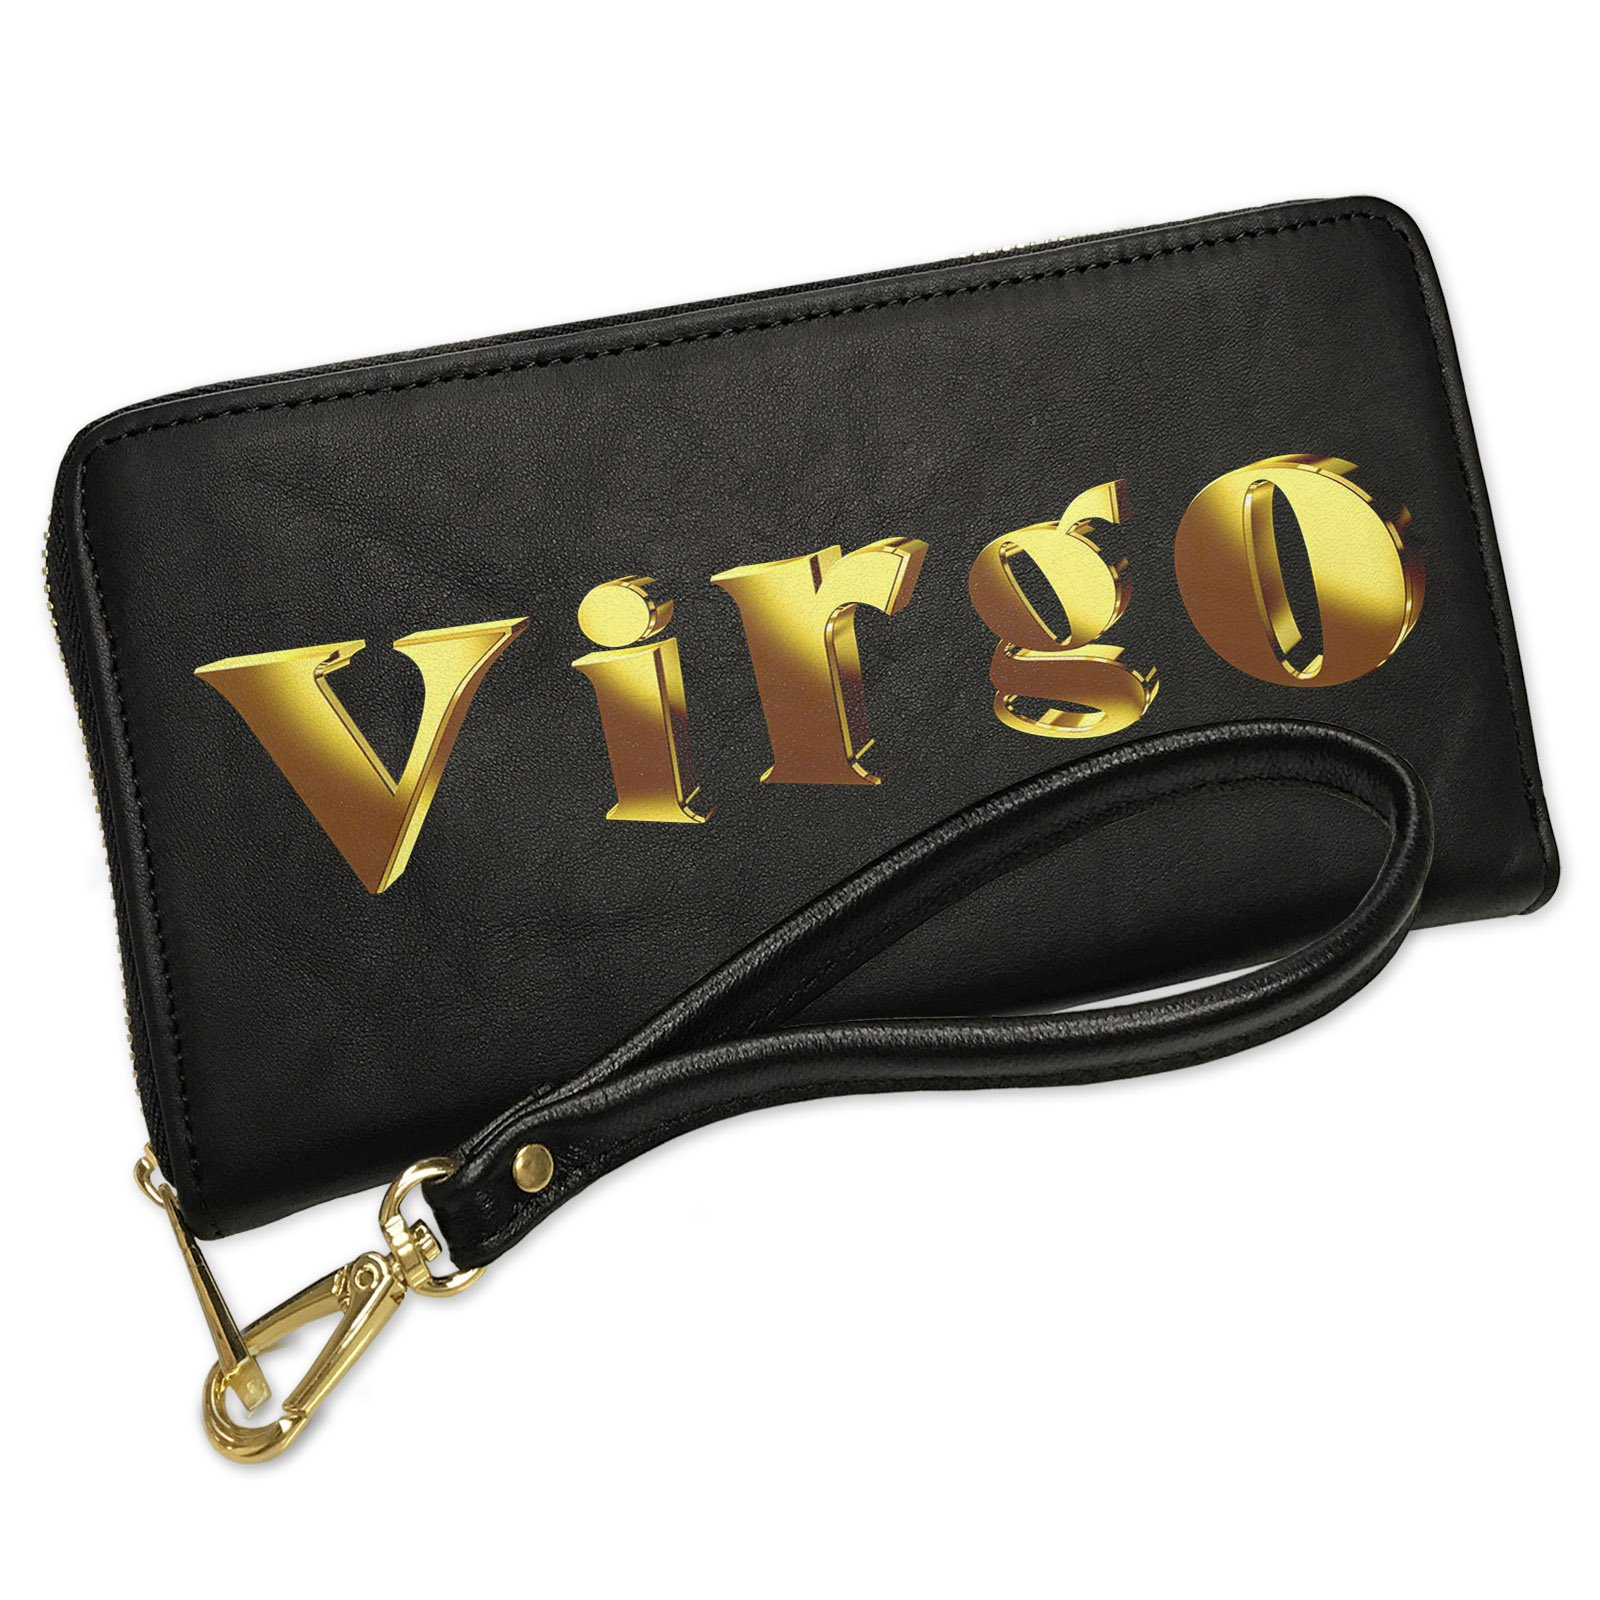 Wallet Clutch Virgo Printed Gold looking Lettering with Removable Wristlet Strap Neonblond